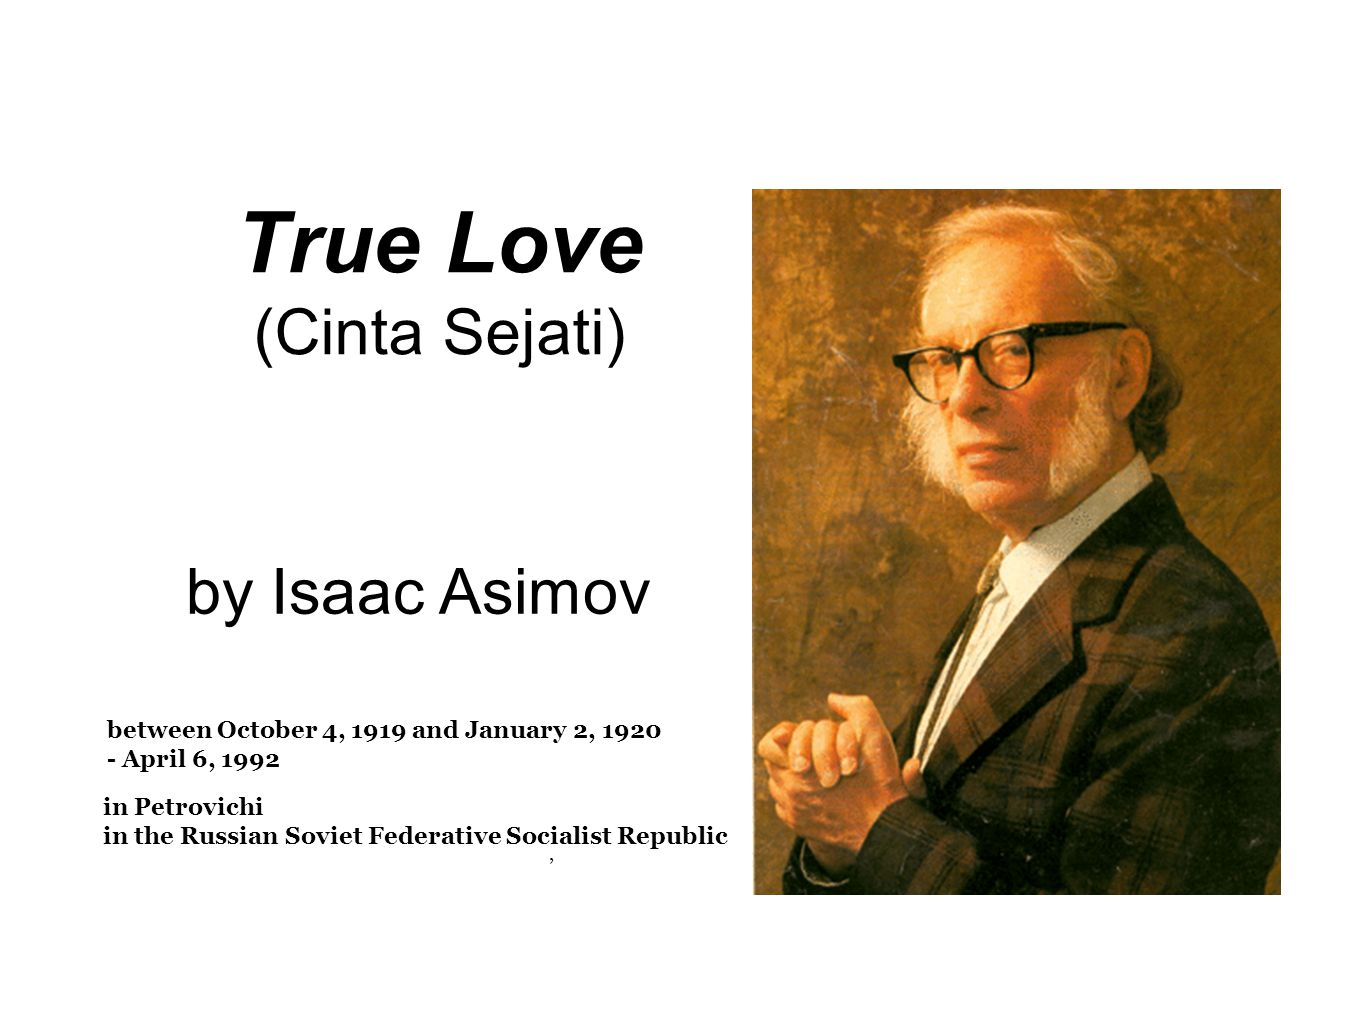 True Love (Cinta Sejati)